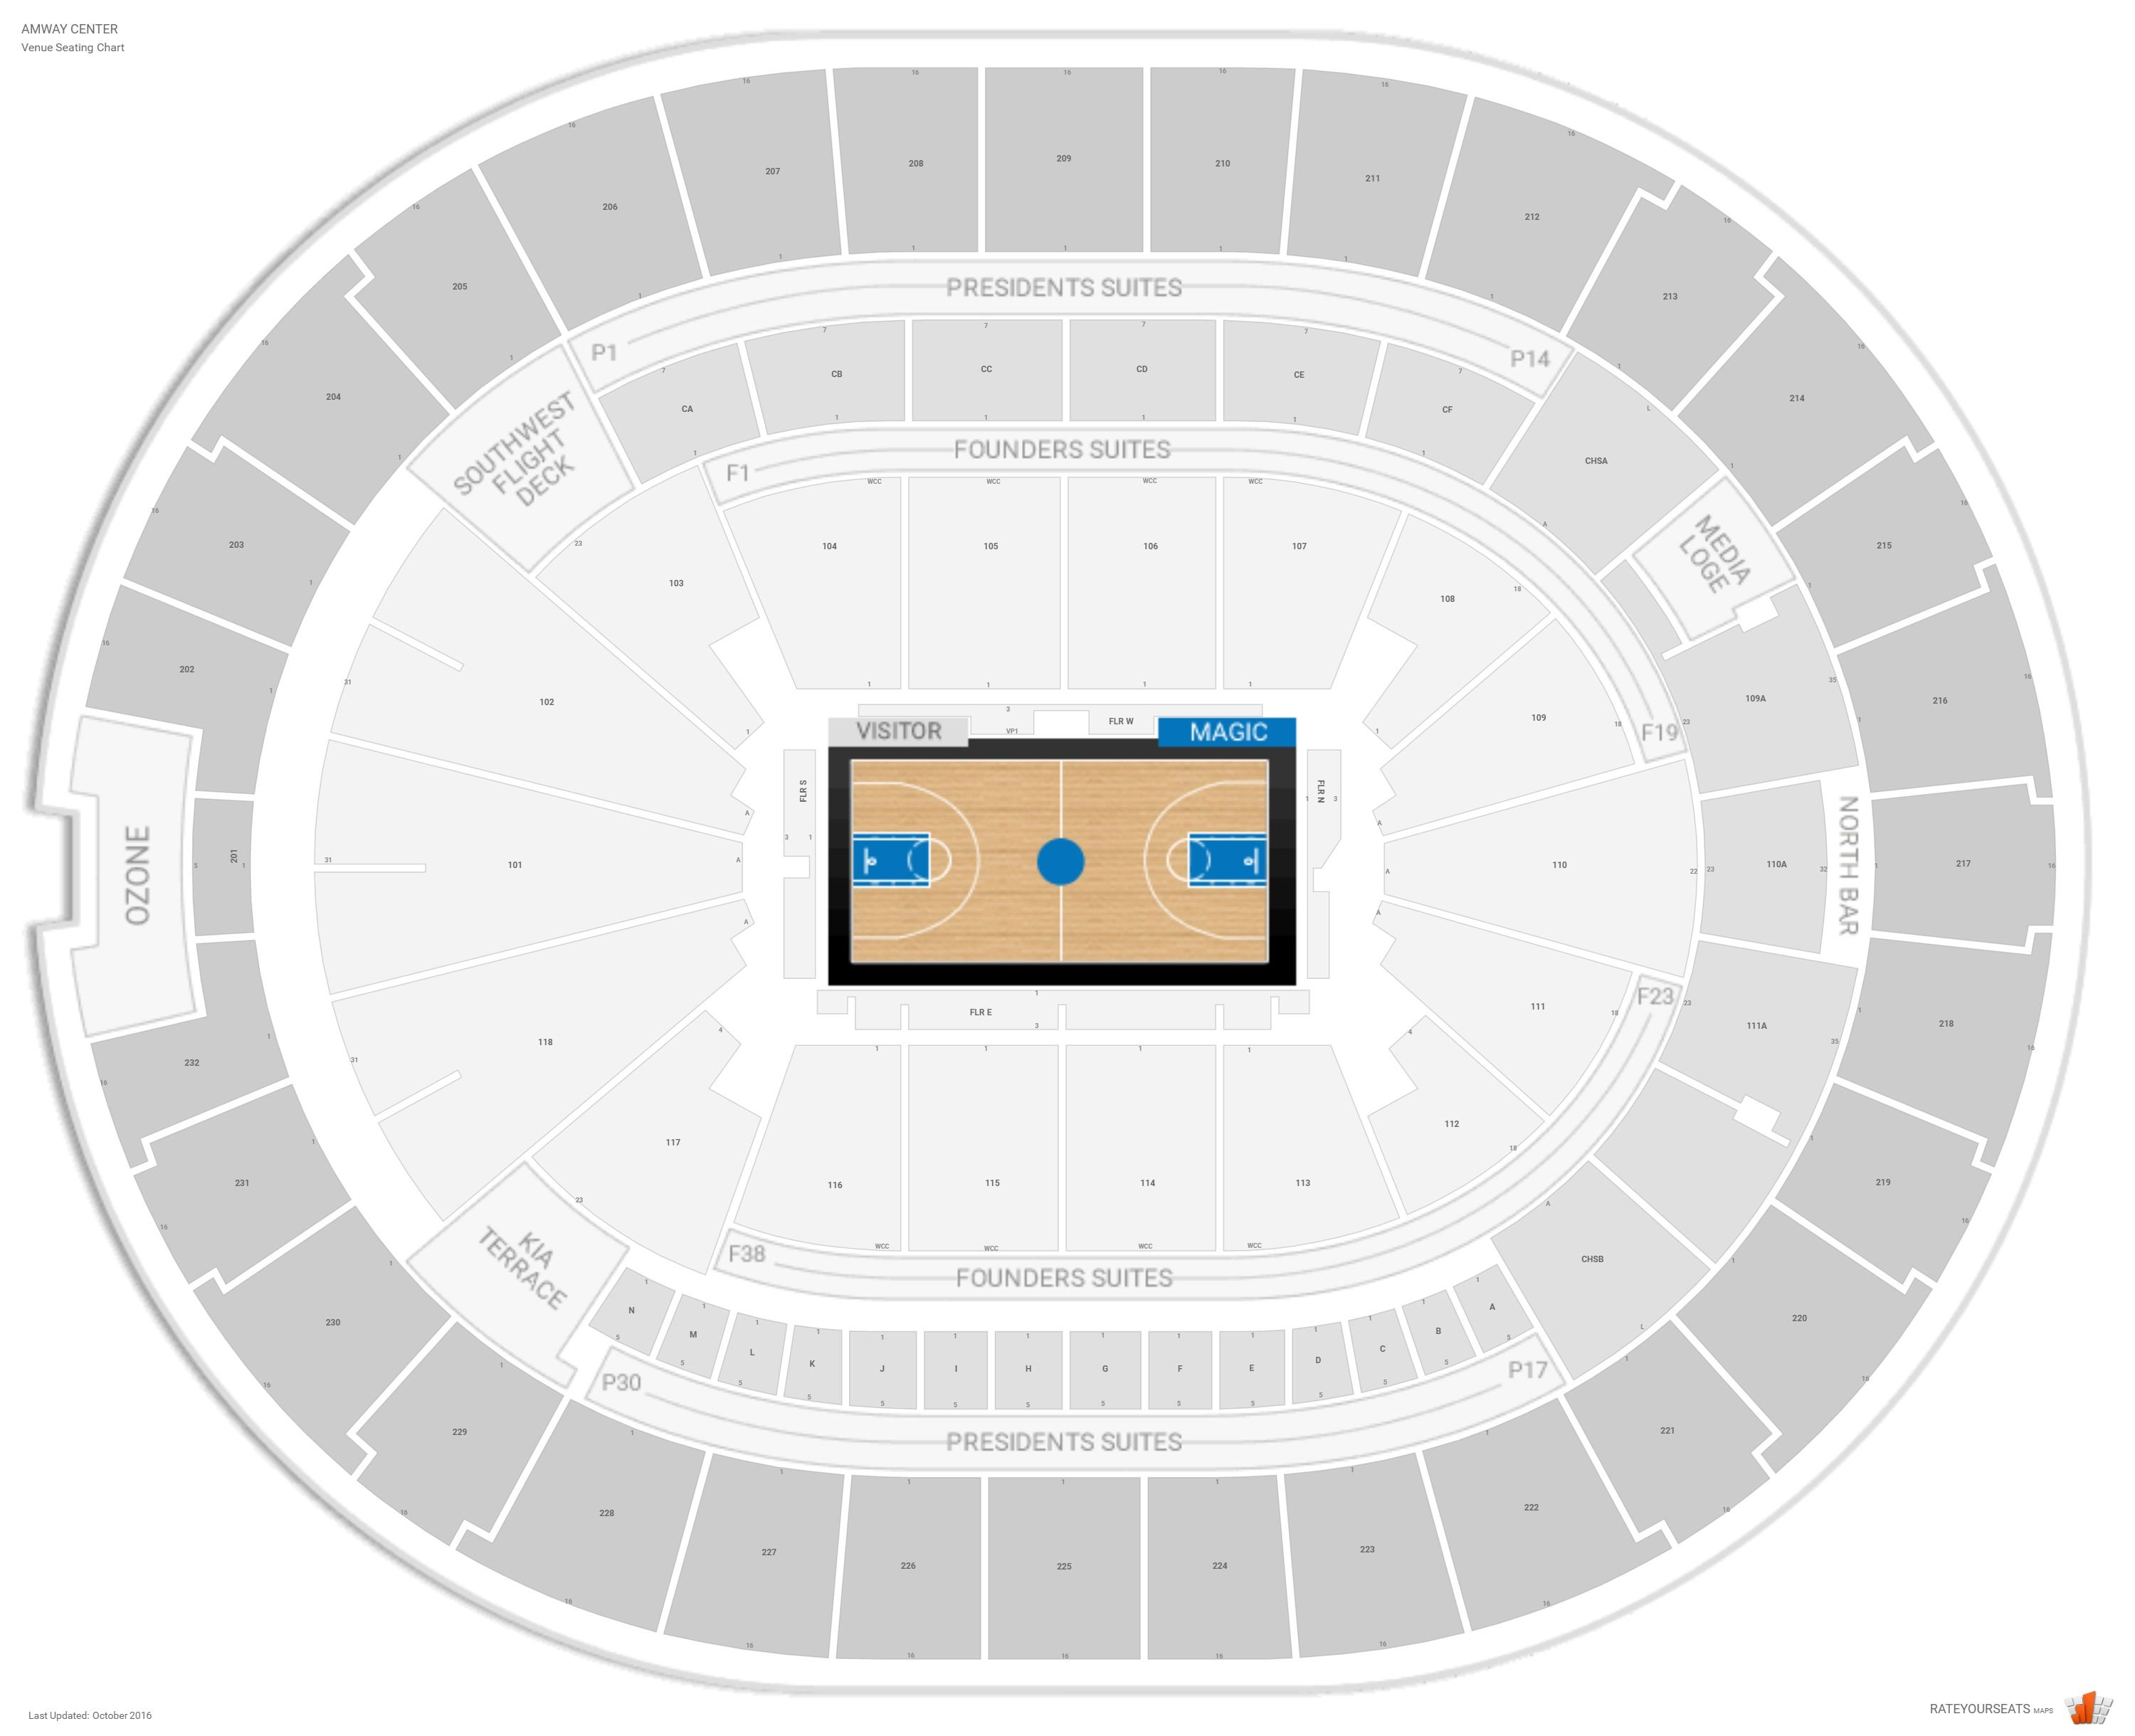 Amway Center Seating Chart With Row Numbers